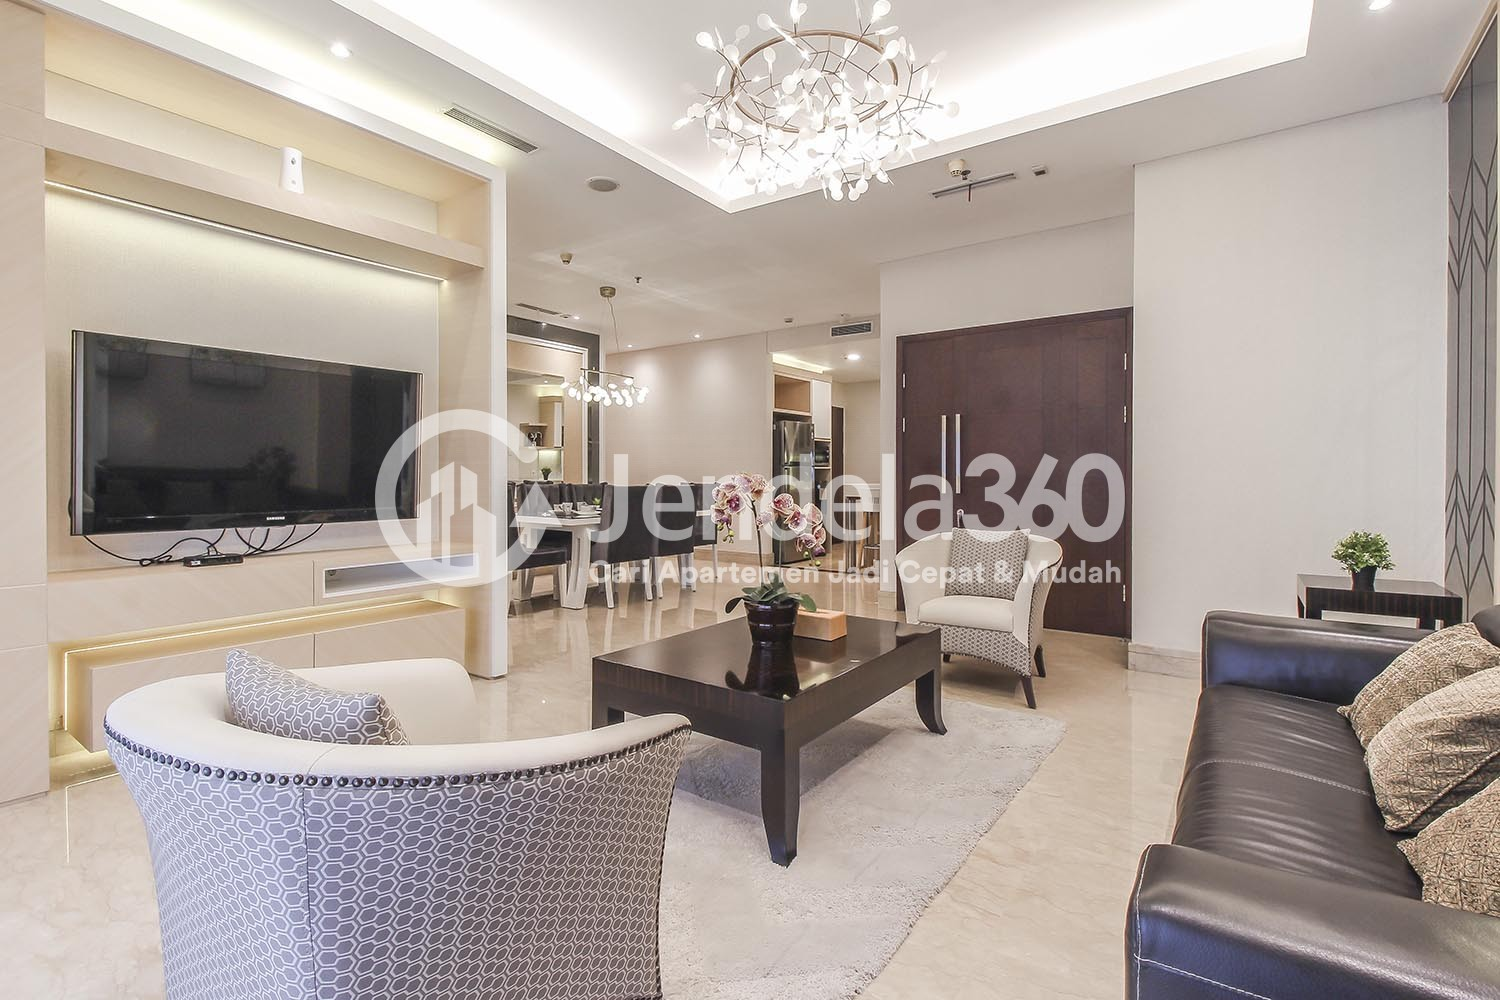 Living Room The Capital Residences Apartment